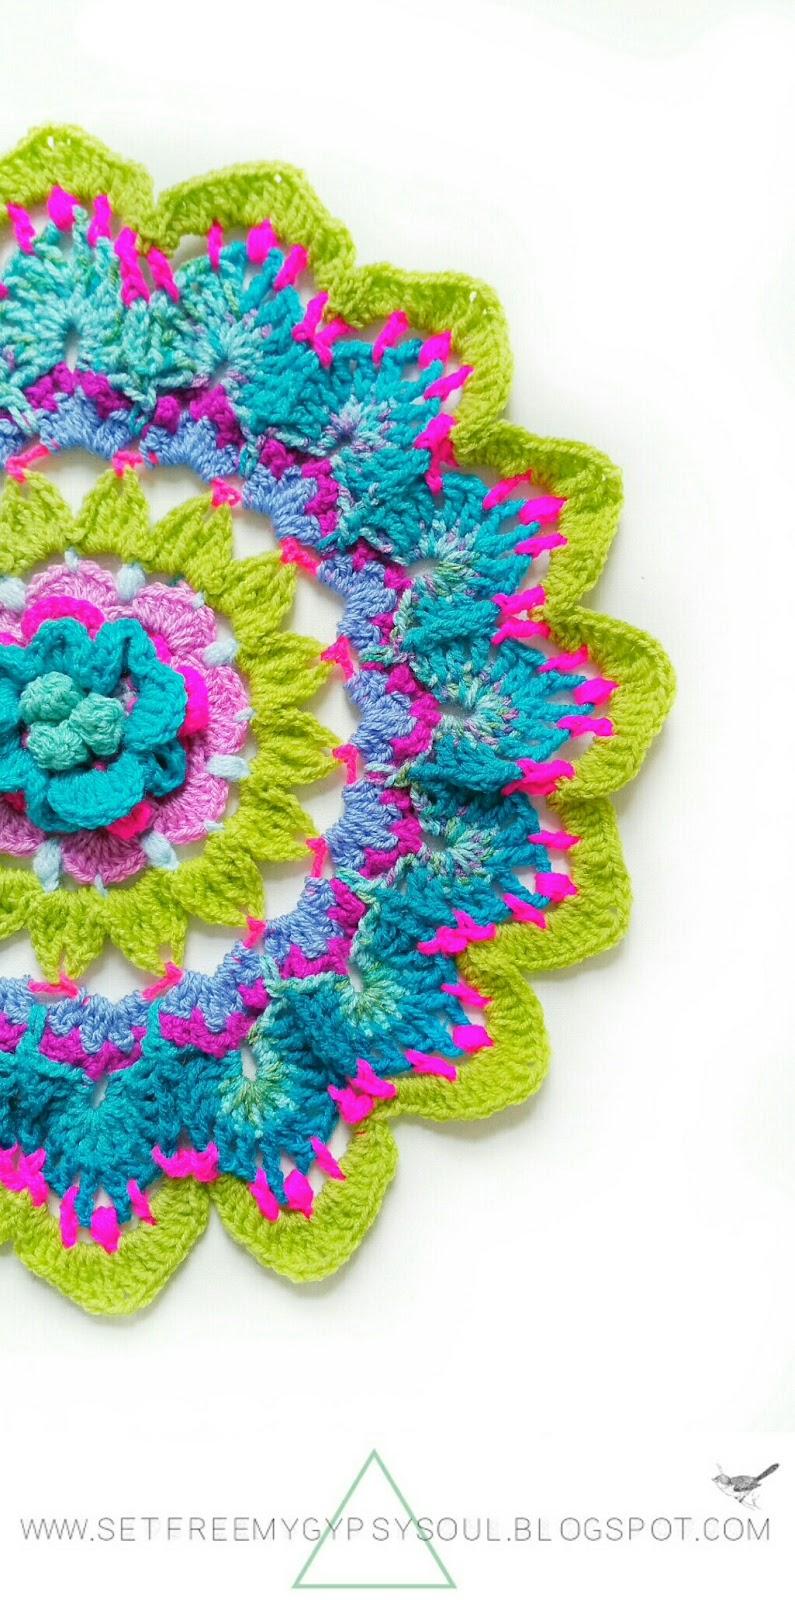 flower mandala crochet pattern free boho bohmeian hippie doily color yarn